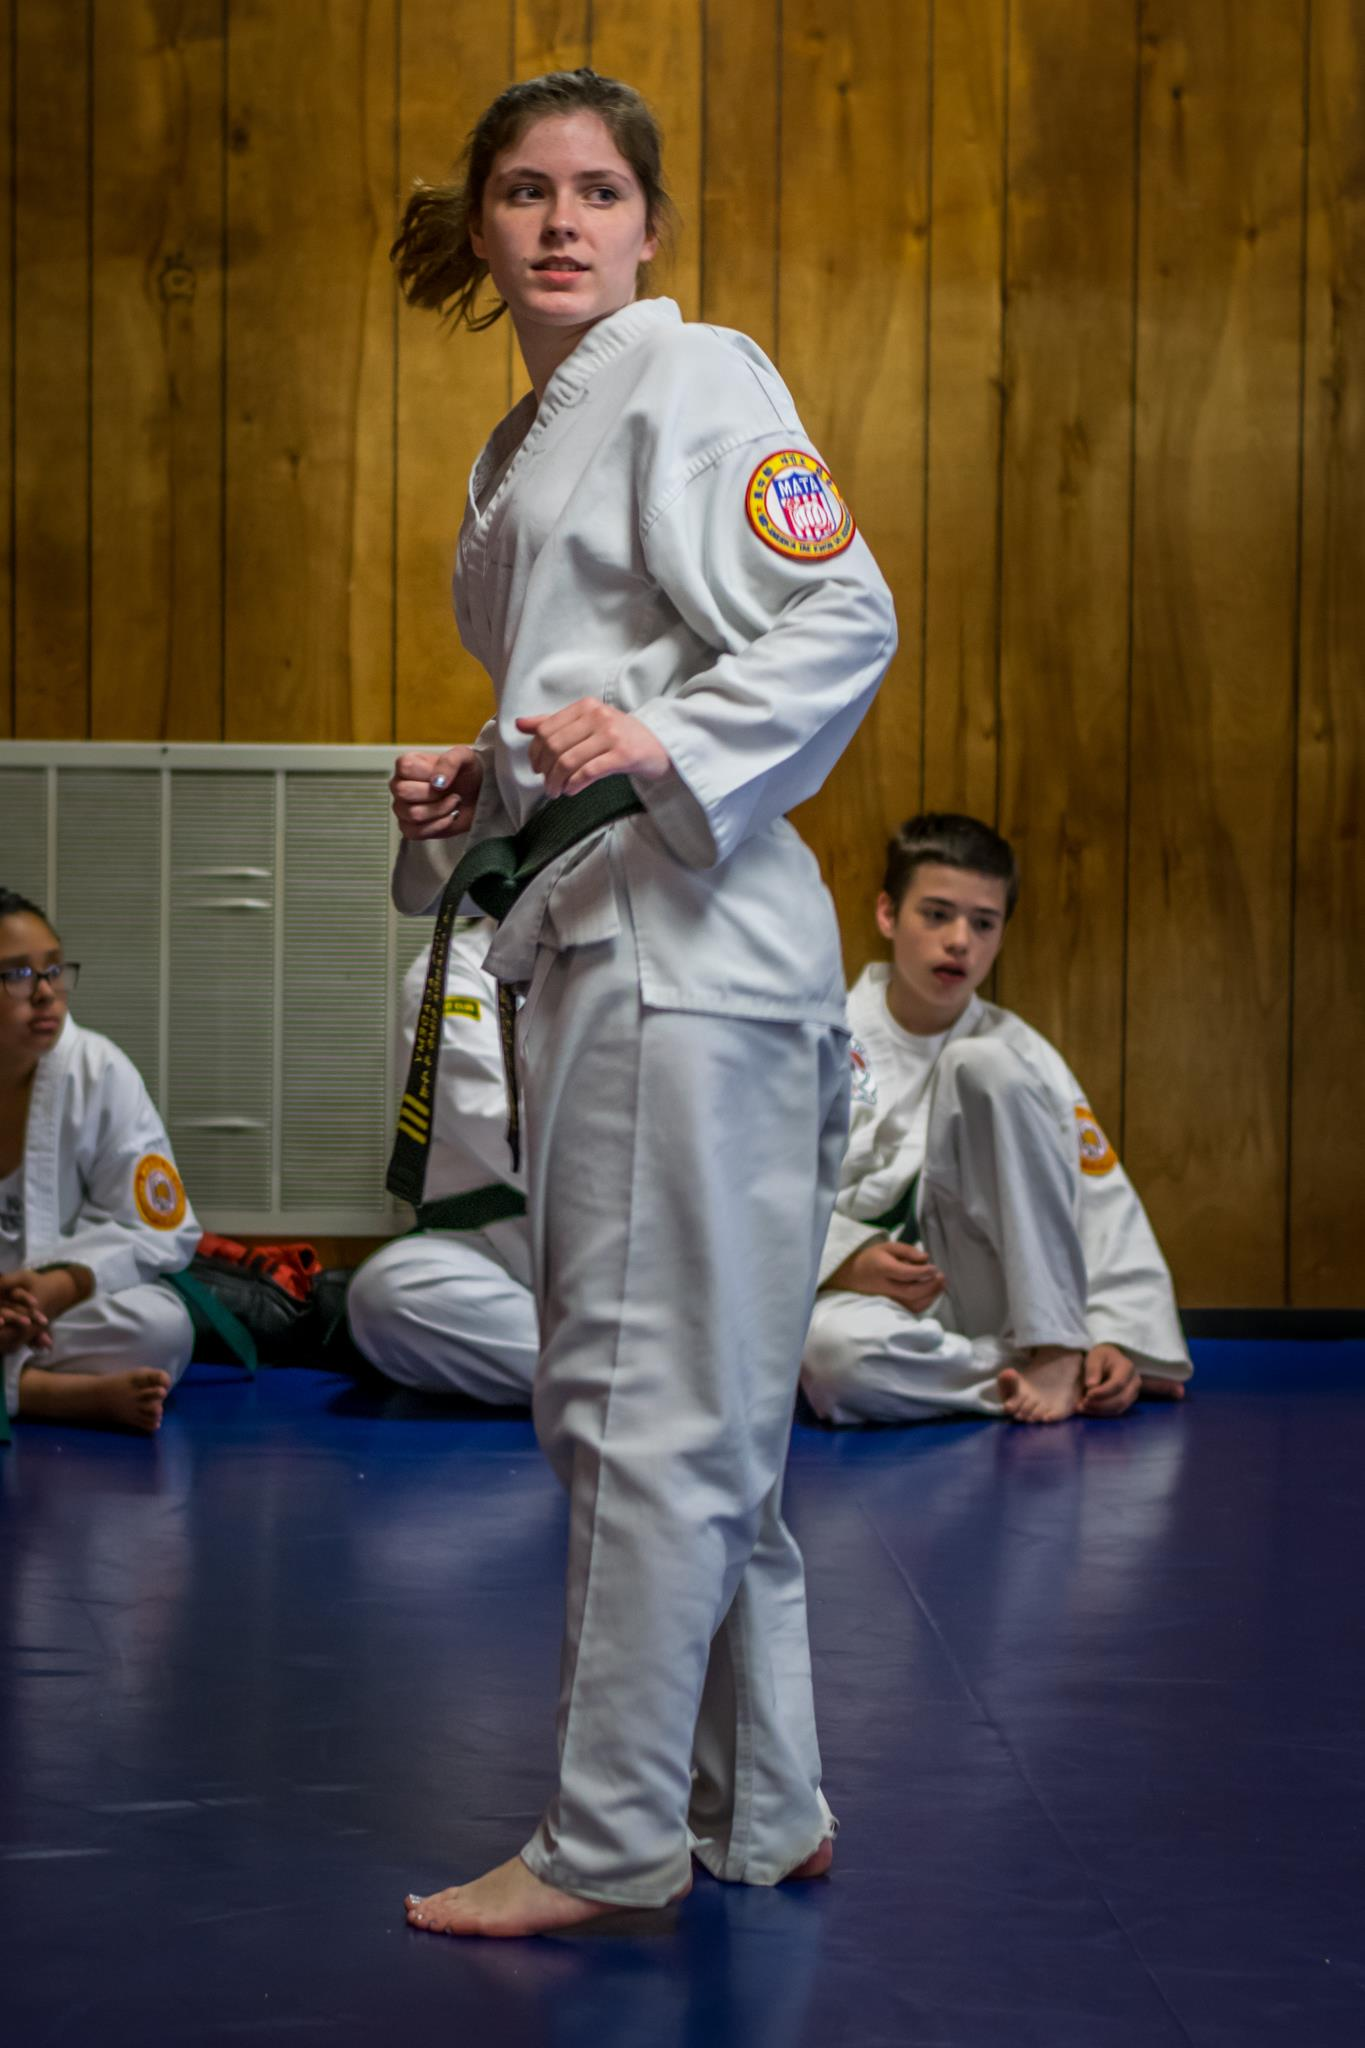 Amanda preparing for Kick in May 2017 Testing